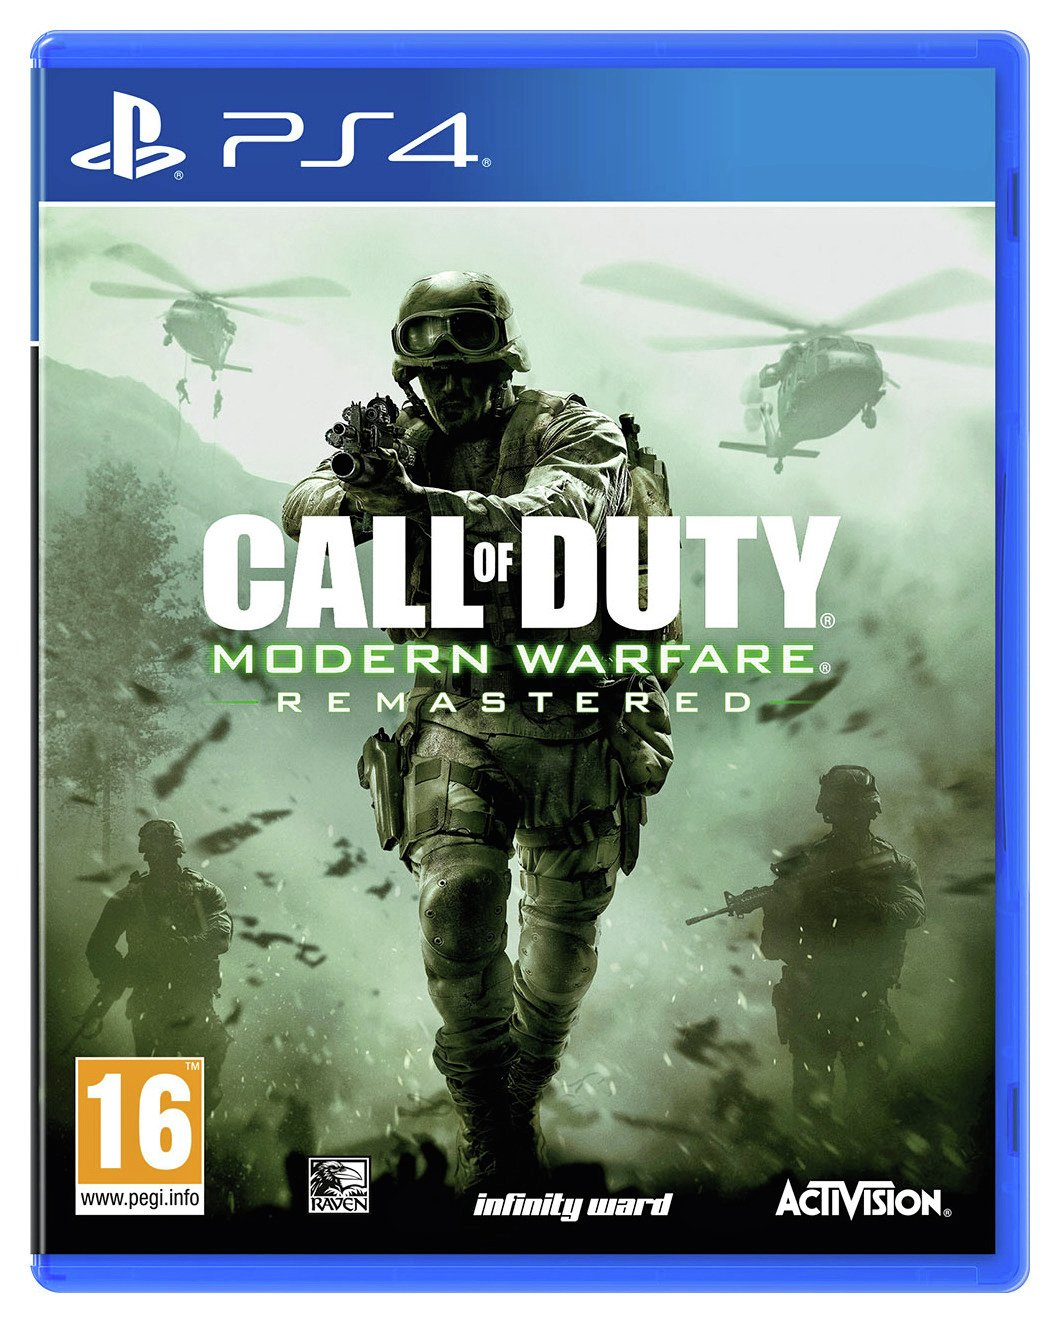 Call of Duty 4: Modern Warfare PS4 Game